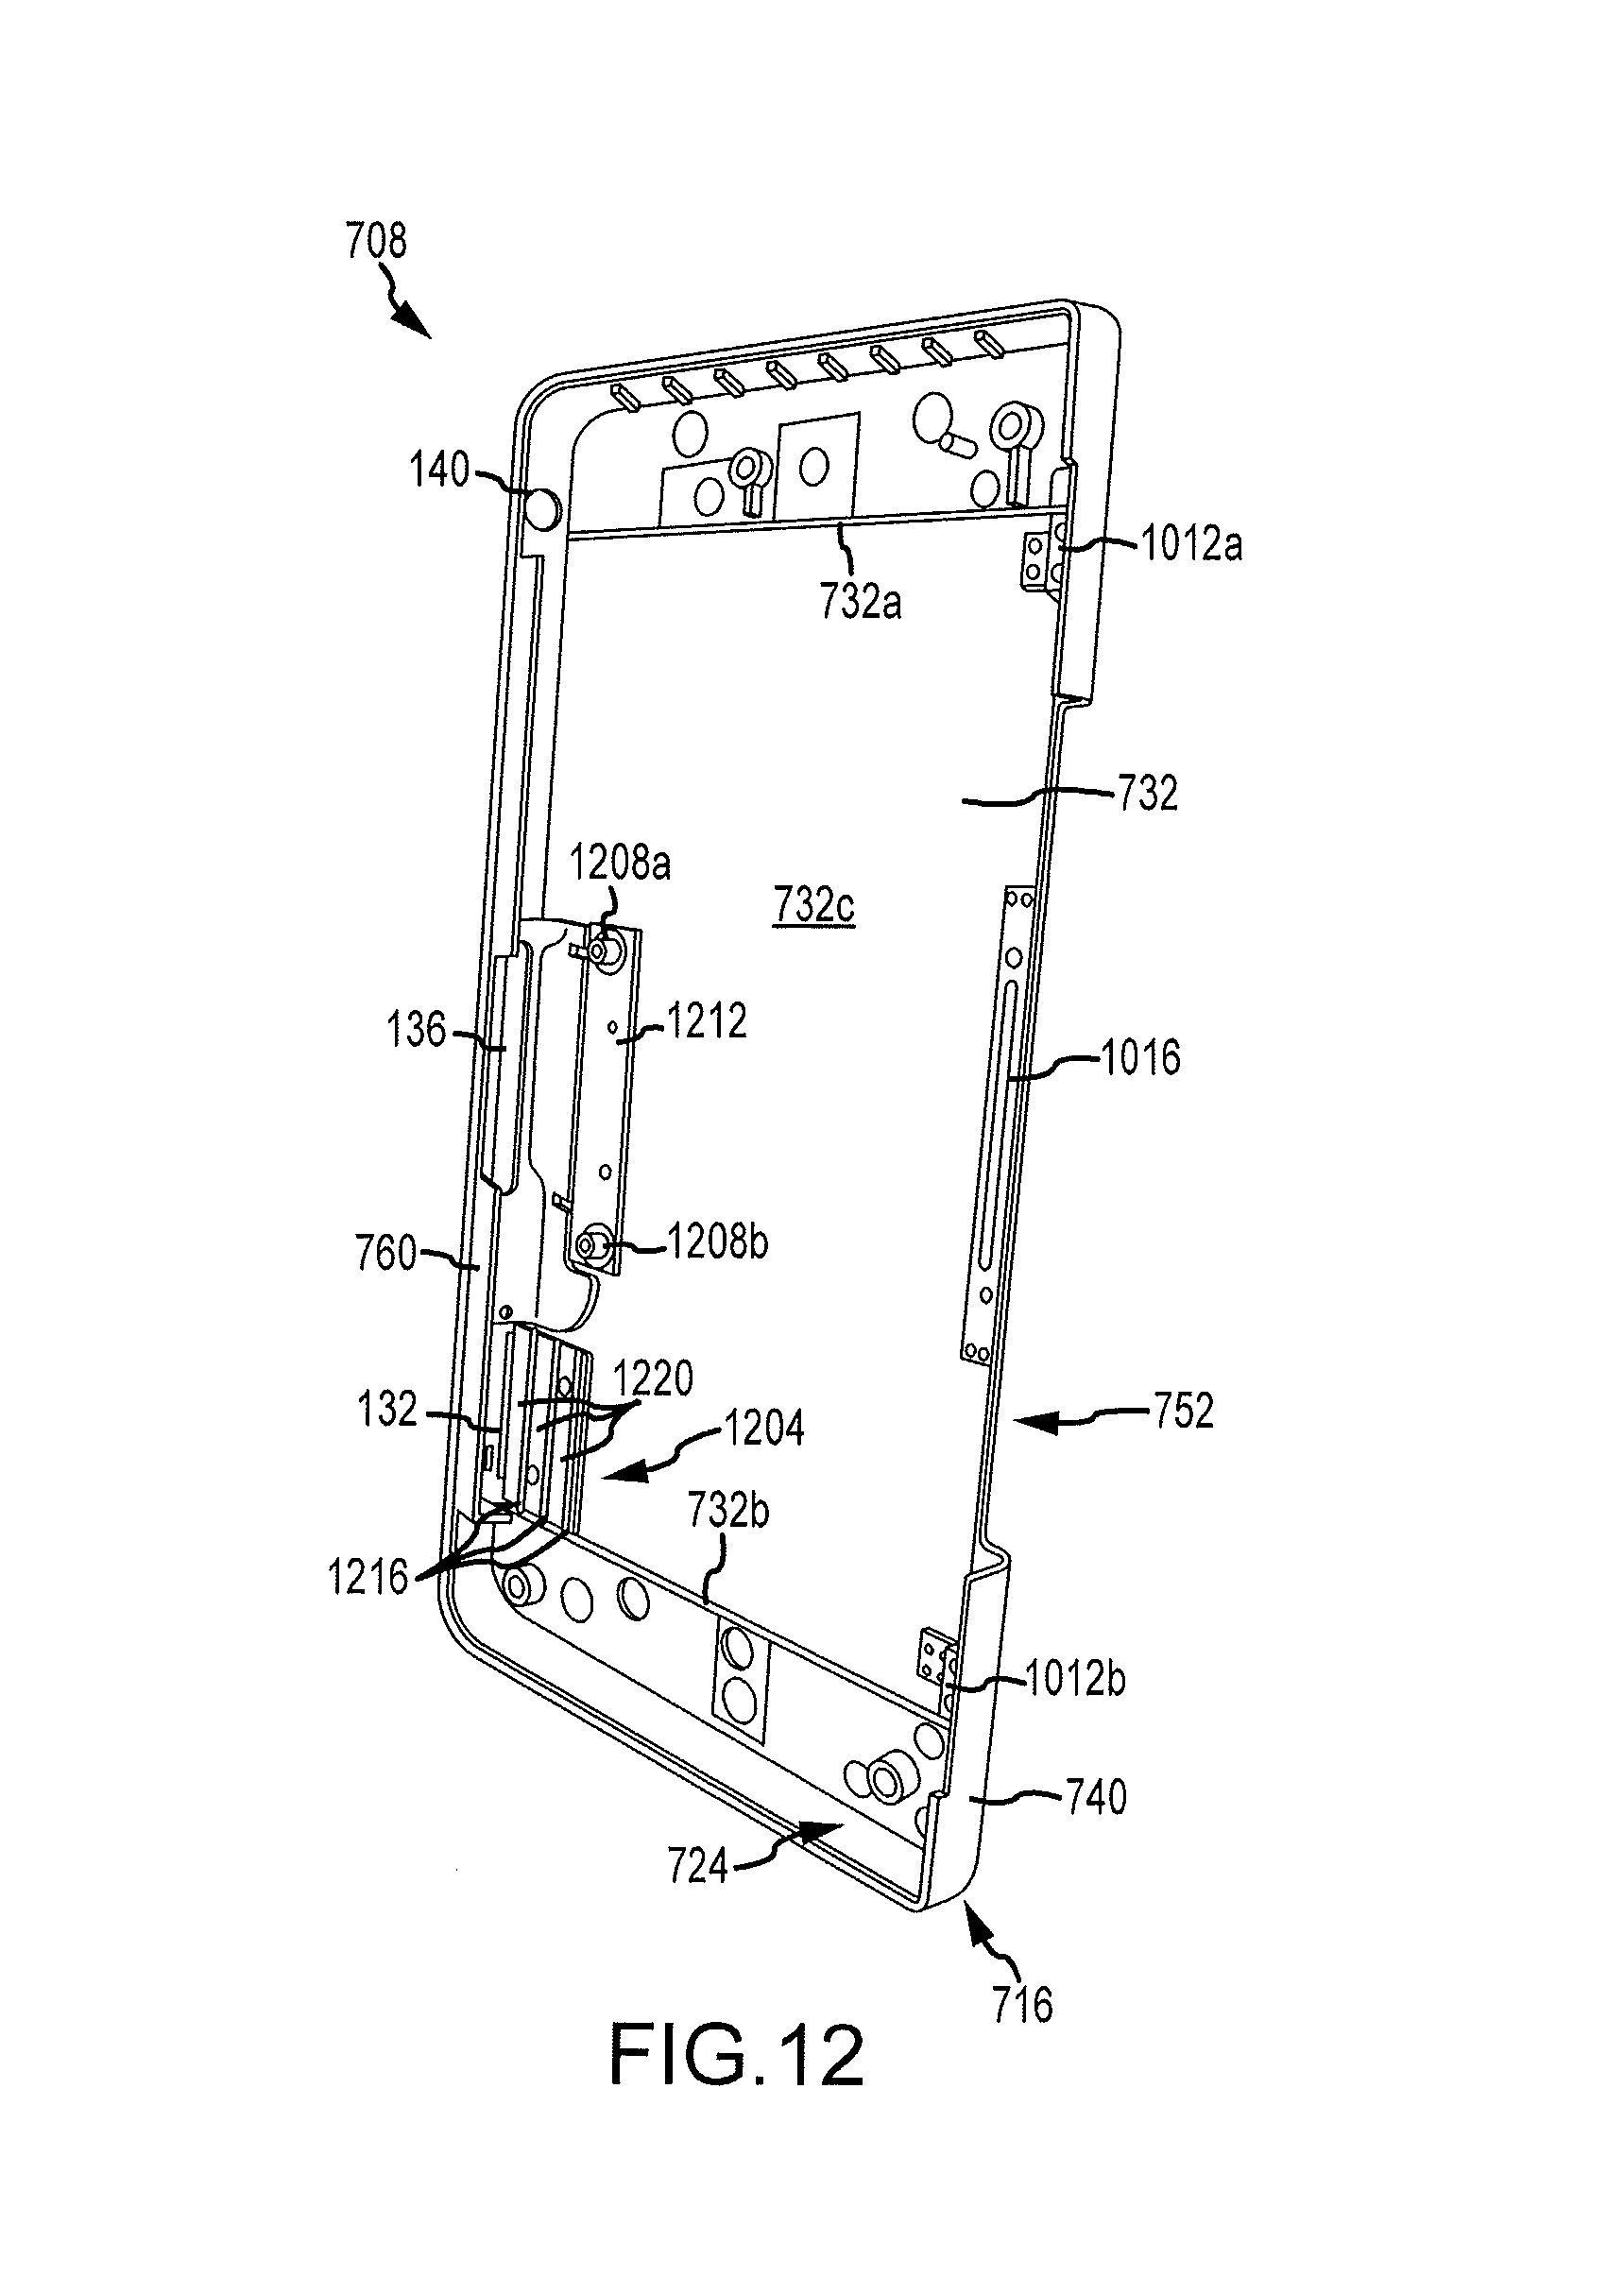 Trs Connector Diagram Furthermore 66 Phone Punch Down Block Wiring